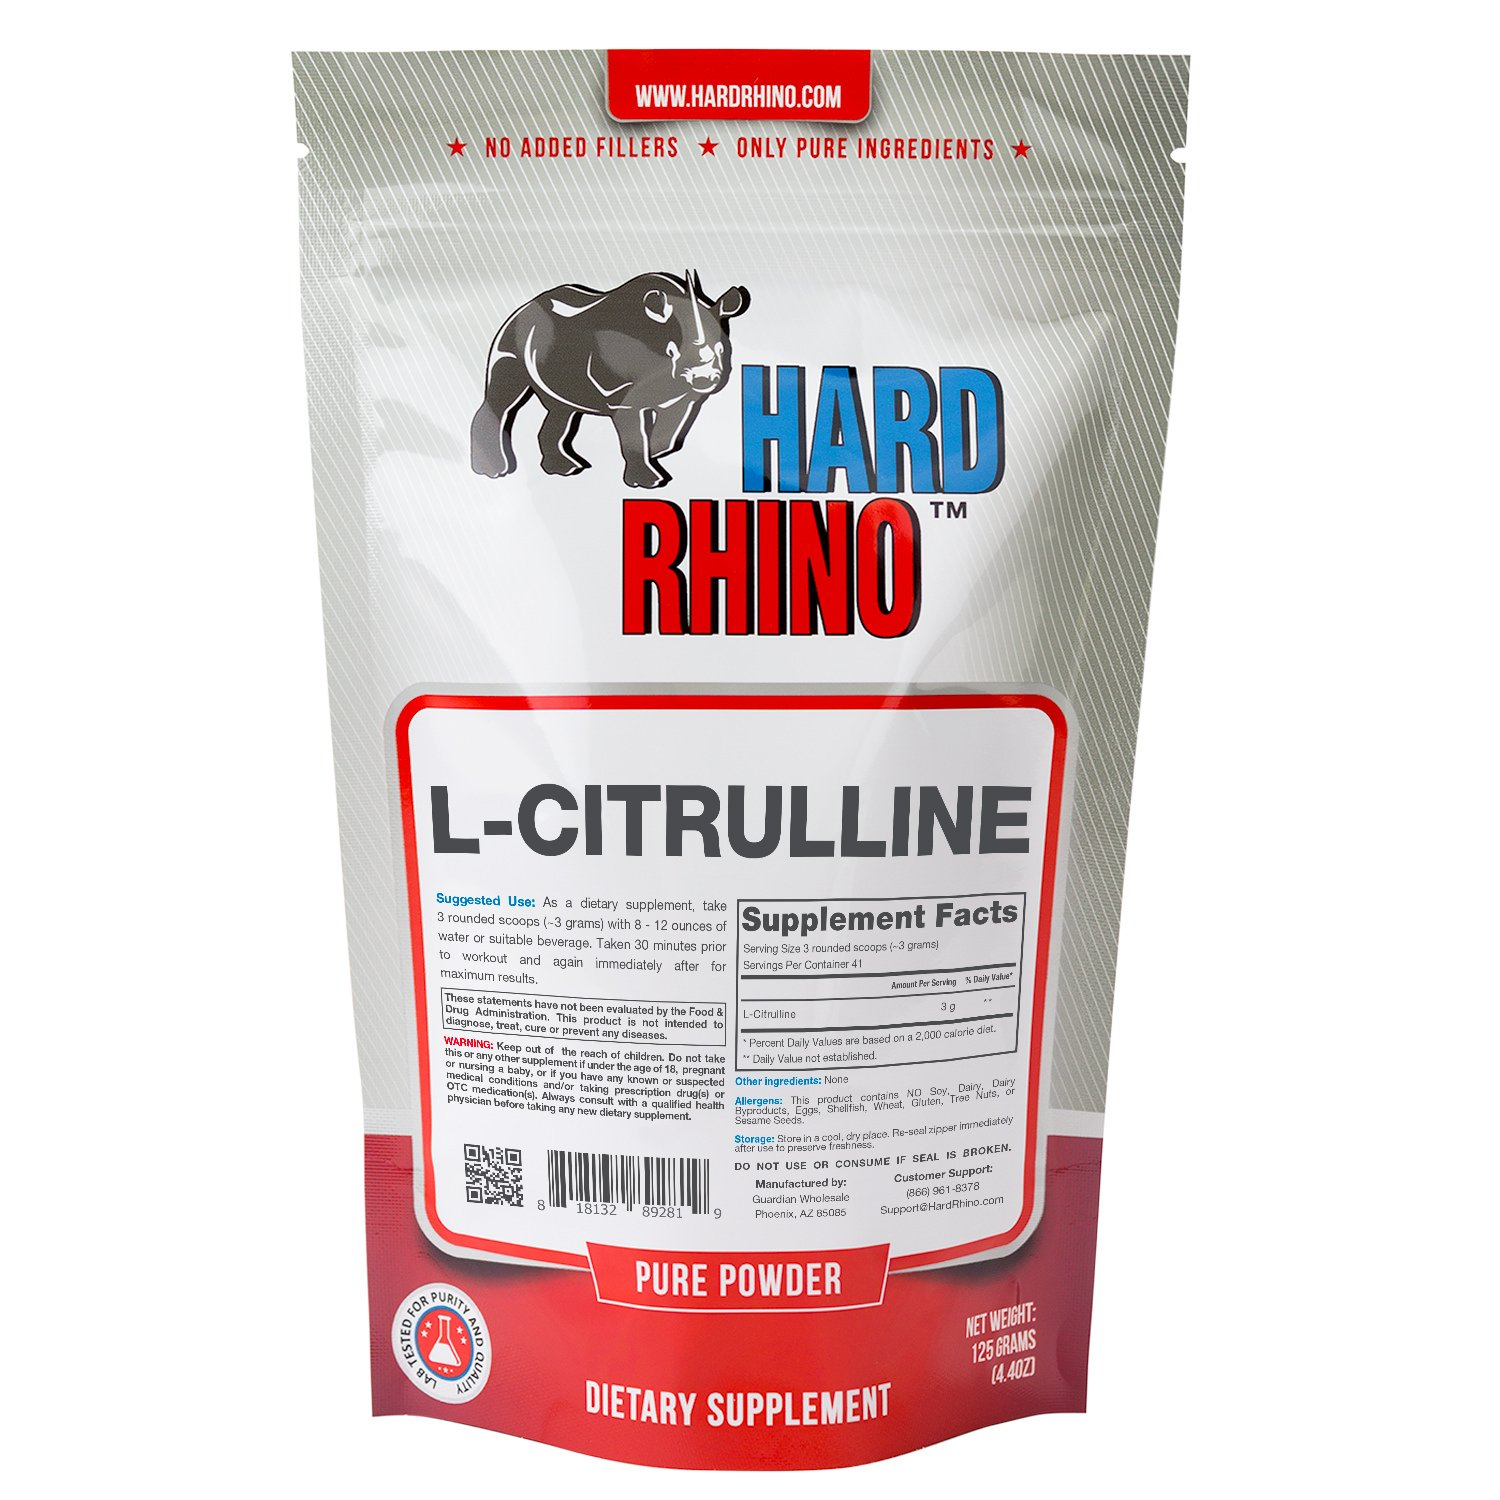 Hard Rhino L-Citrulline Powder, 125 Grams (4.4 Oz), Unflavored, Lab-Tested, Scoop Included